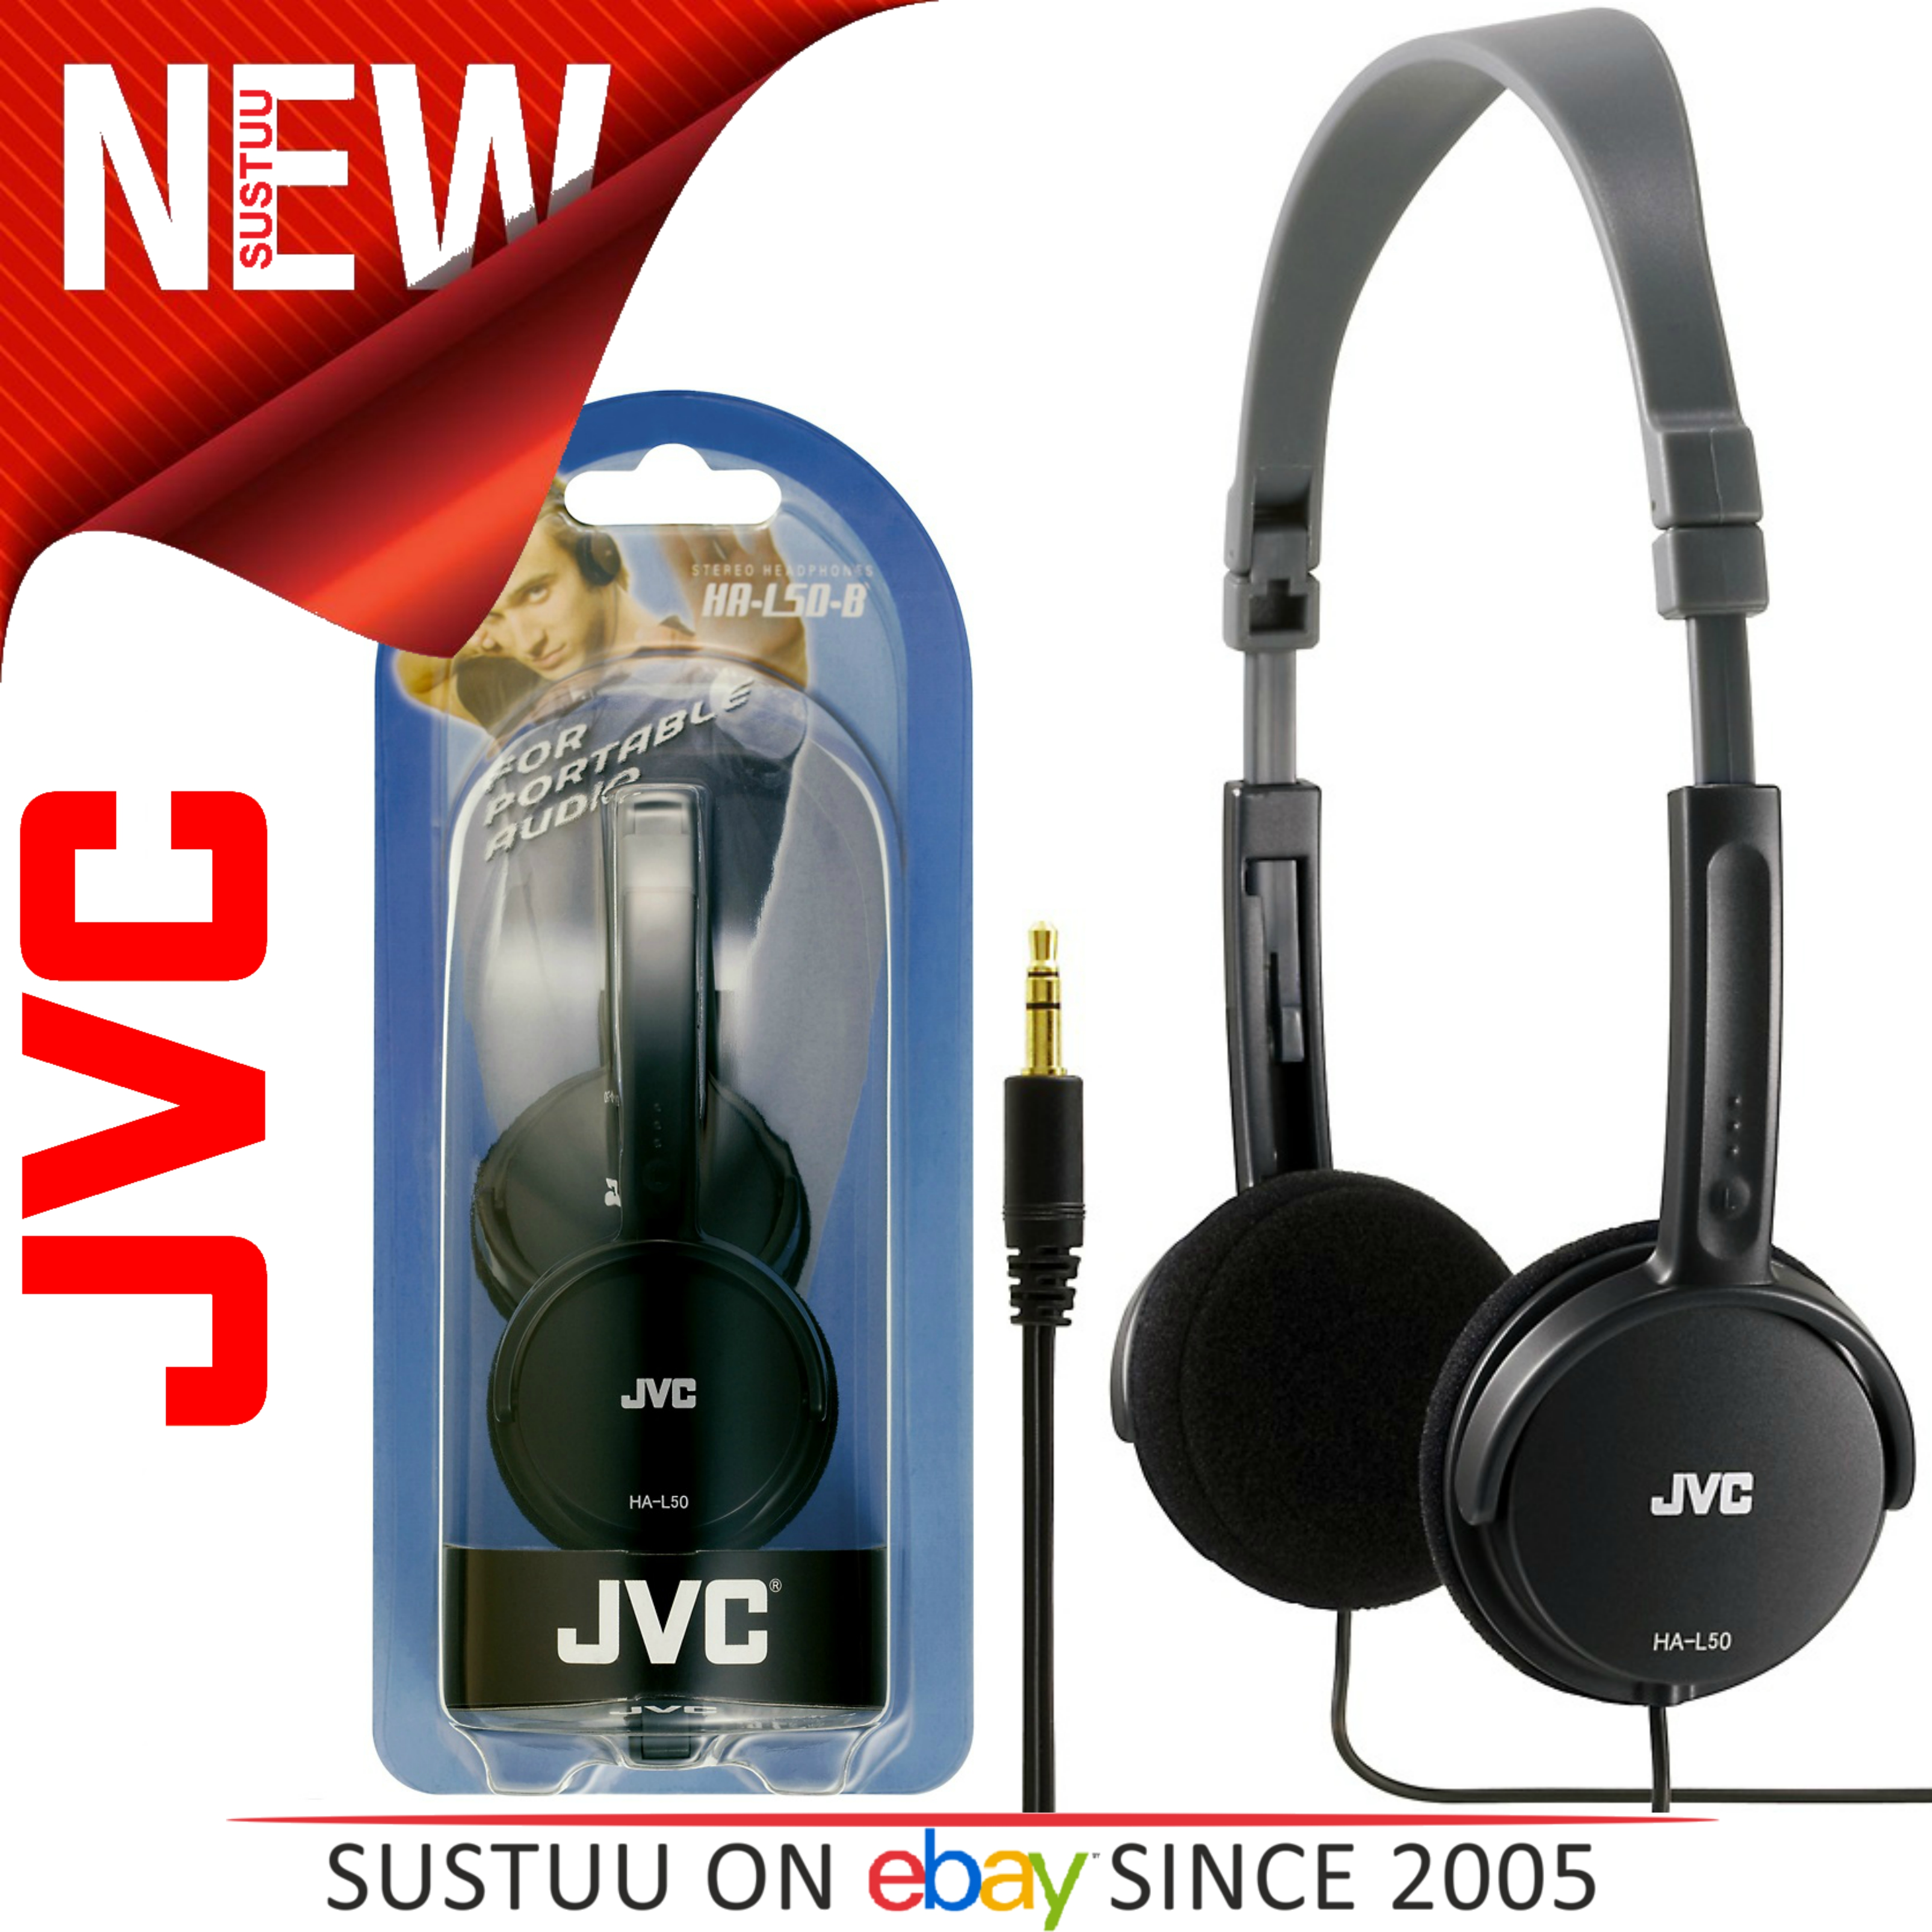 JVC HA-L50 Foldable Light Weight Stereo Headphone|Smartphone|Tablet|PC|Black|